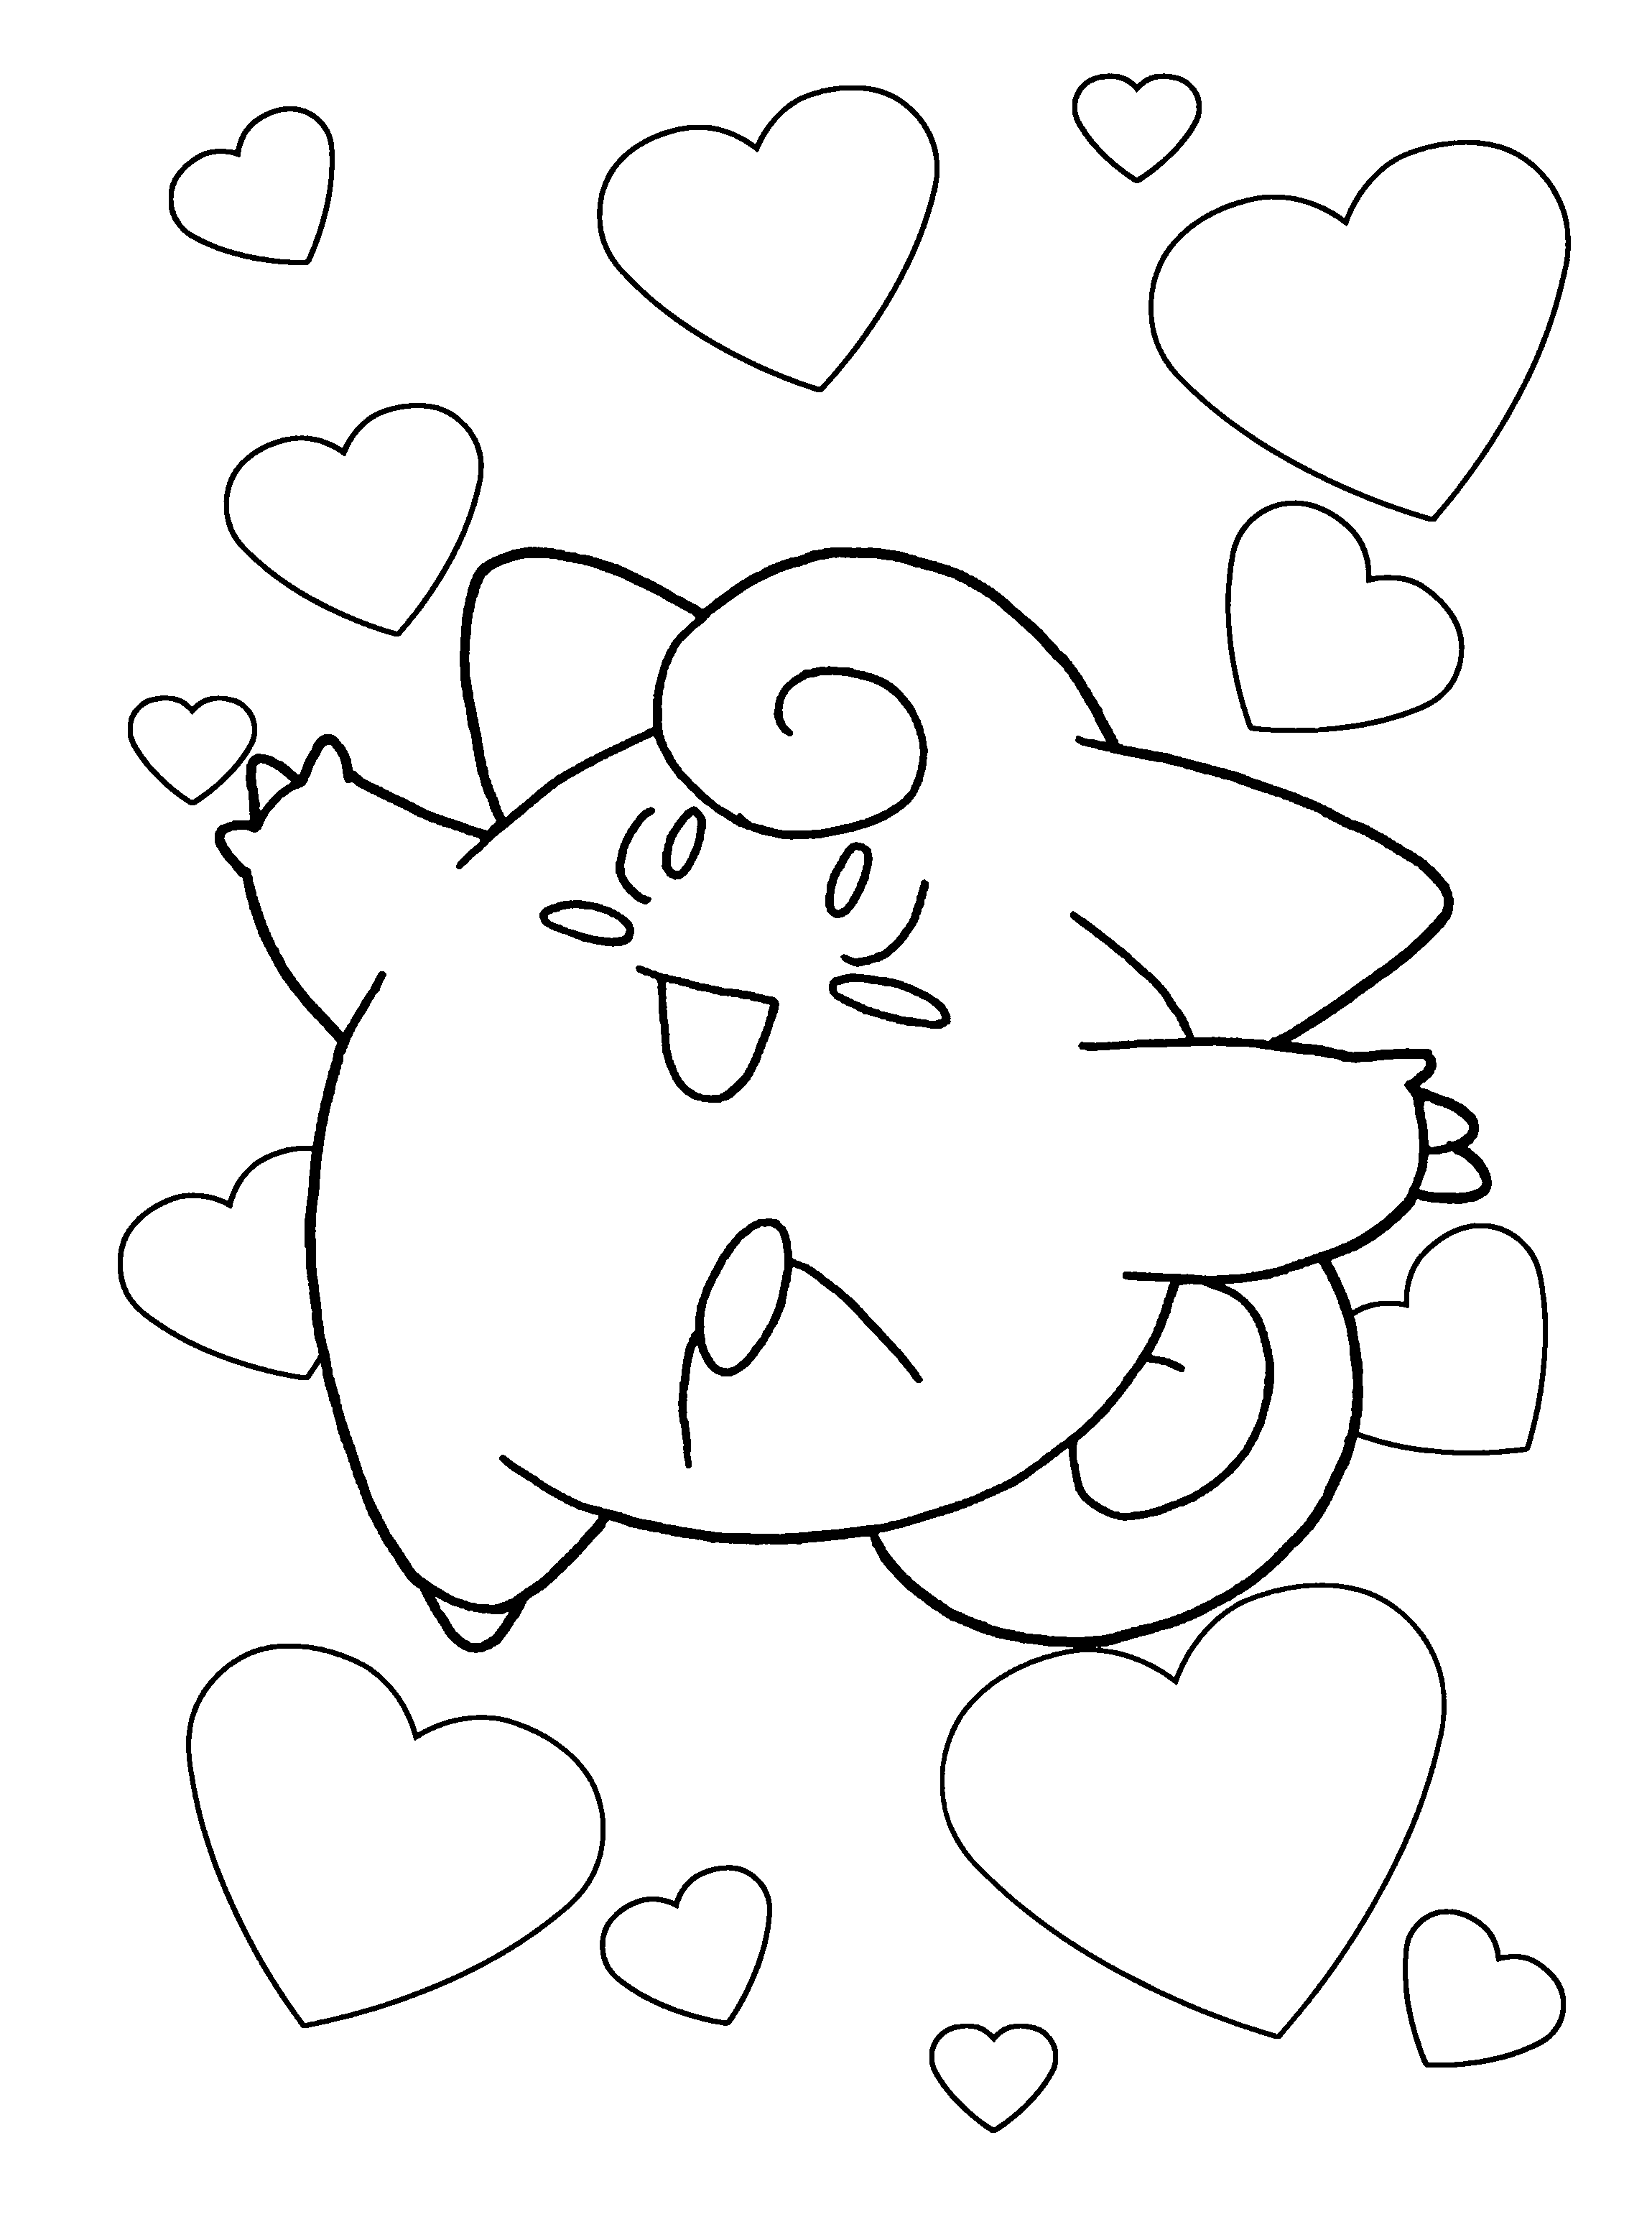 printable pokemon coloring pages get this pokemon coloring page free printable 27420 pages pokemon printable coloring